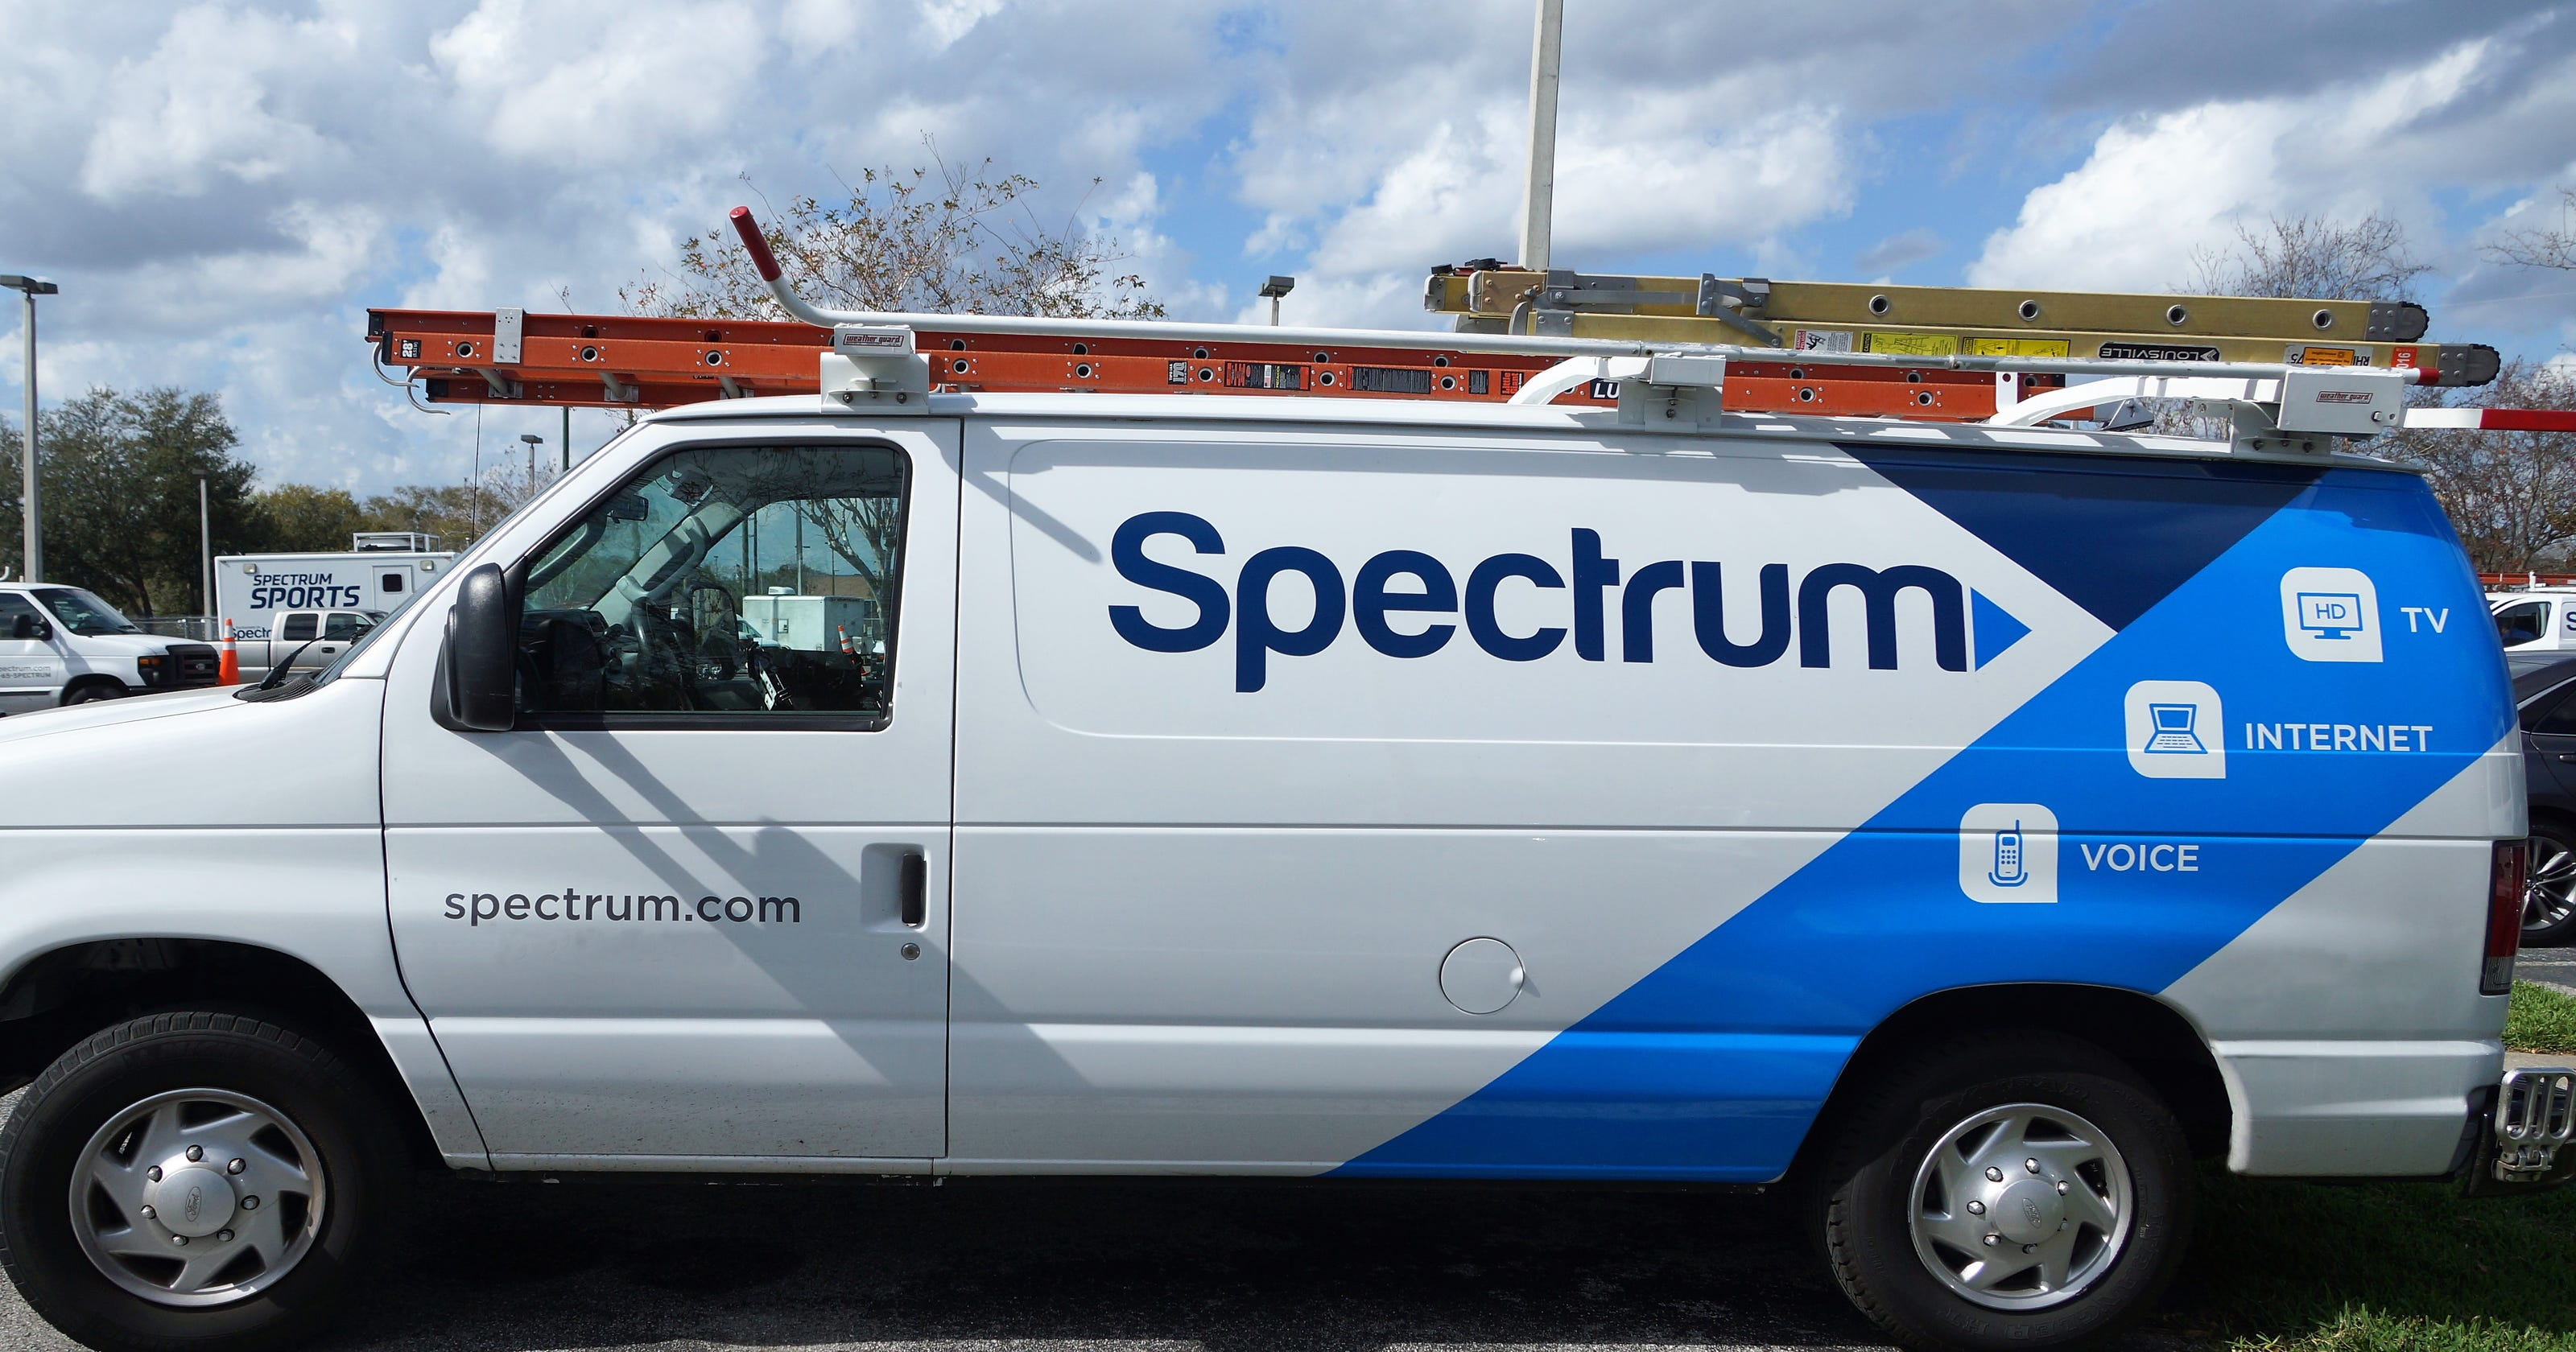 Spectrum launches Internet TV package aimed at cord-cutters